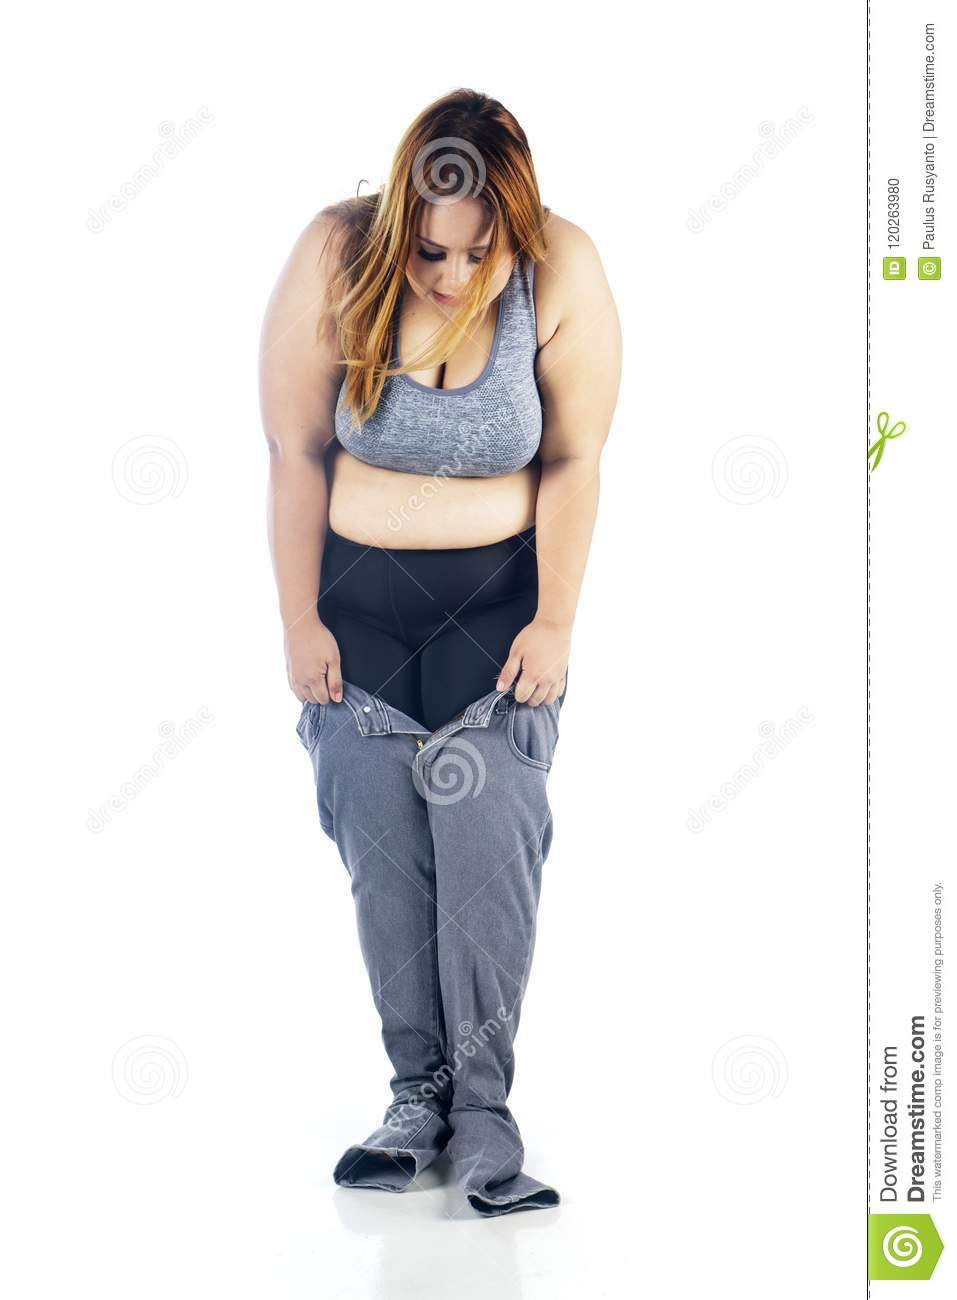 Fat Tight Jeans Images